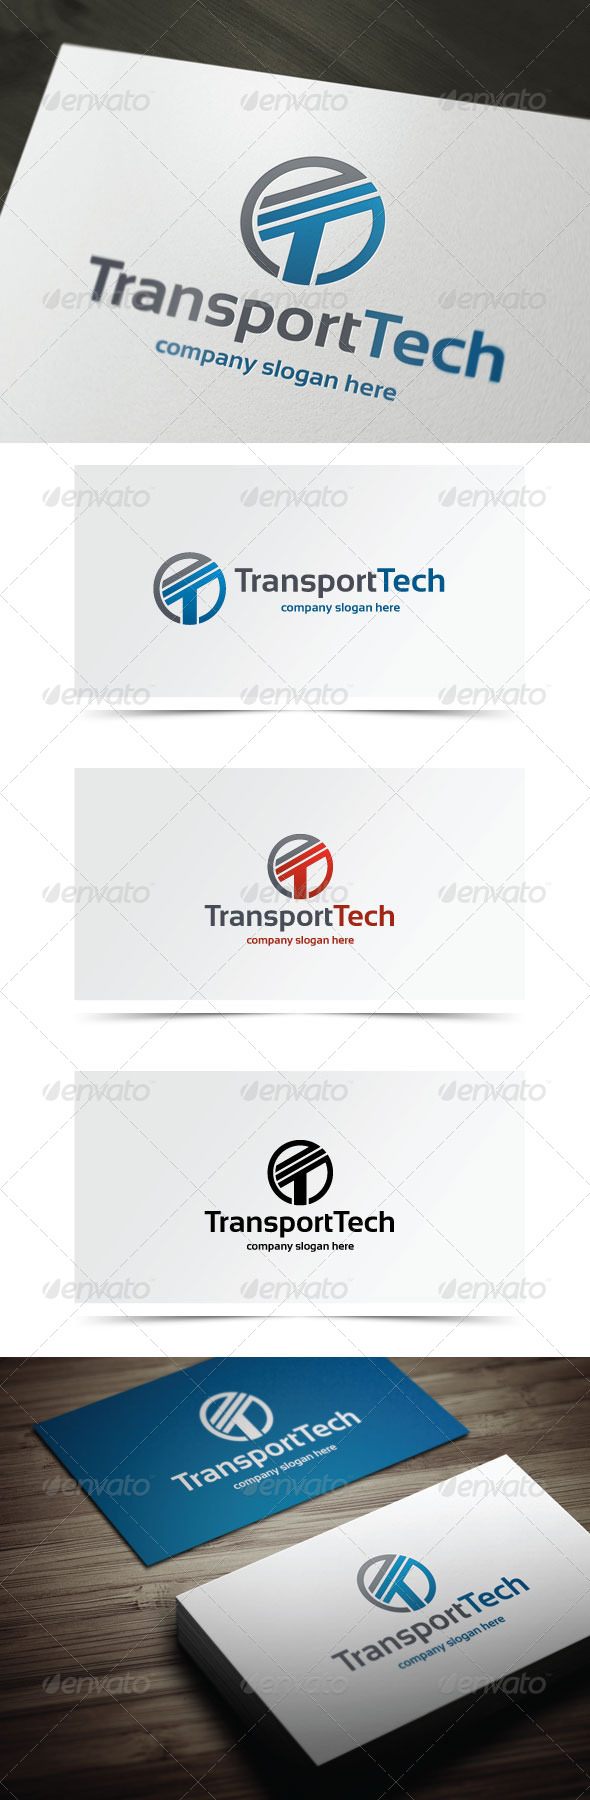 GraphicRiver Transport Tech 5939414